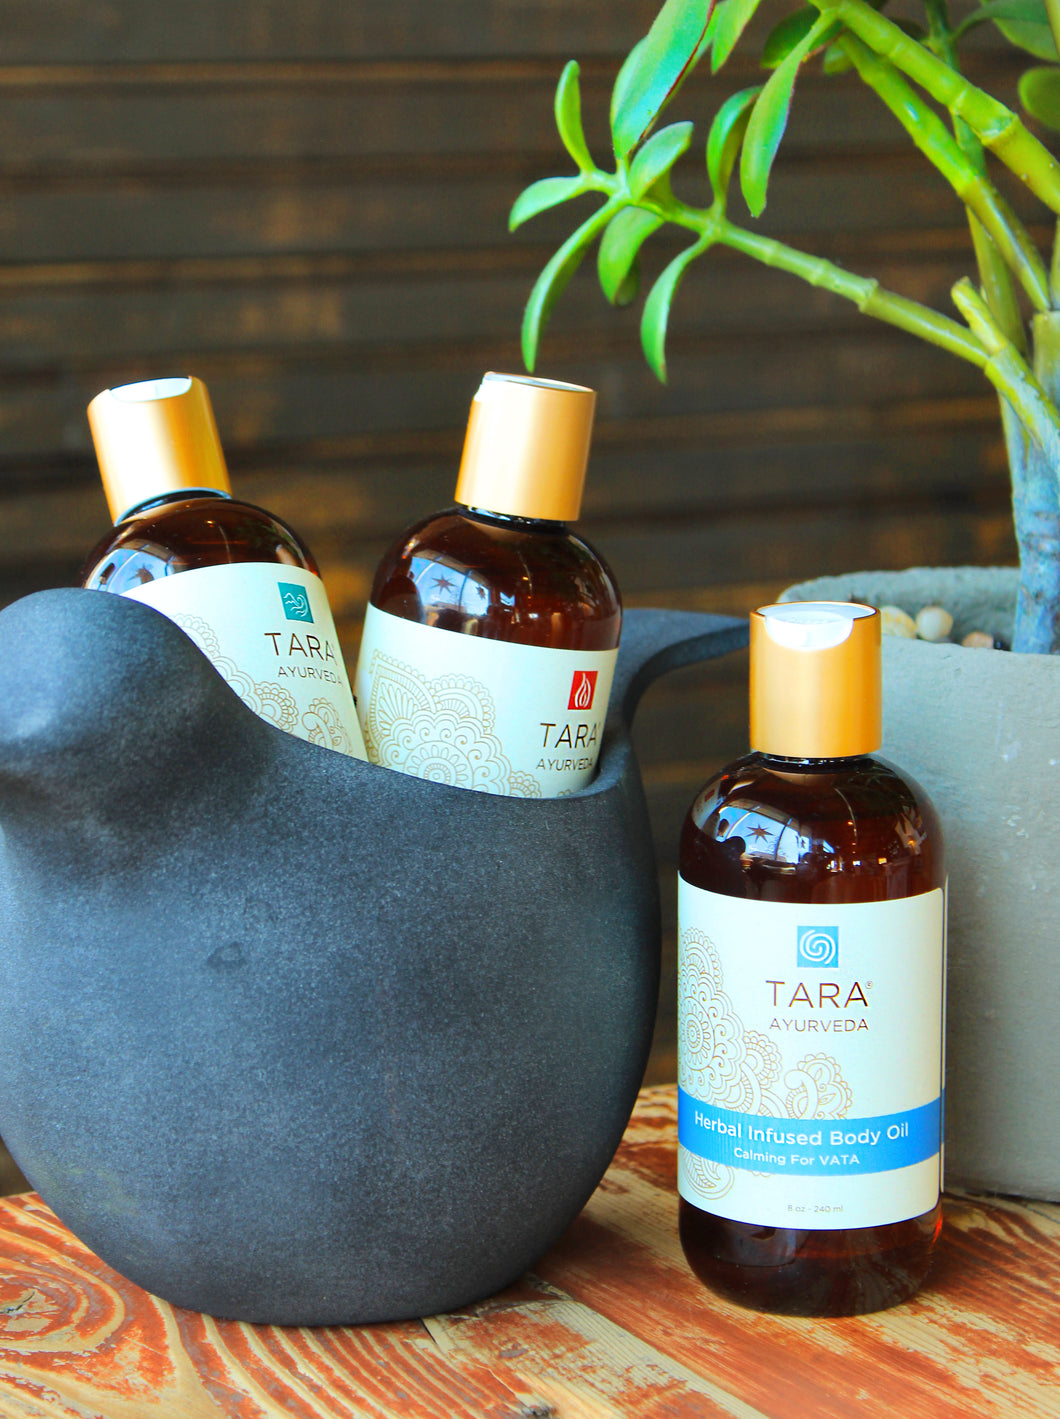 Tara Spa Ayurvedic Herbal-Infused Body Oil - 8oz in a variety of scents: Kapha, Pitta, Vata, etc.